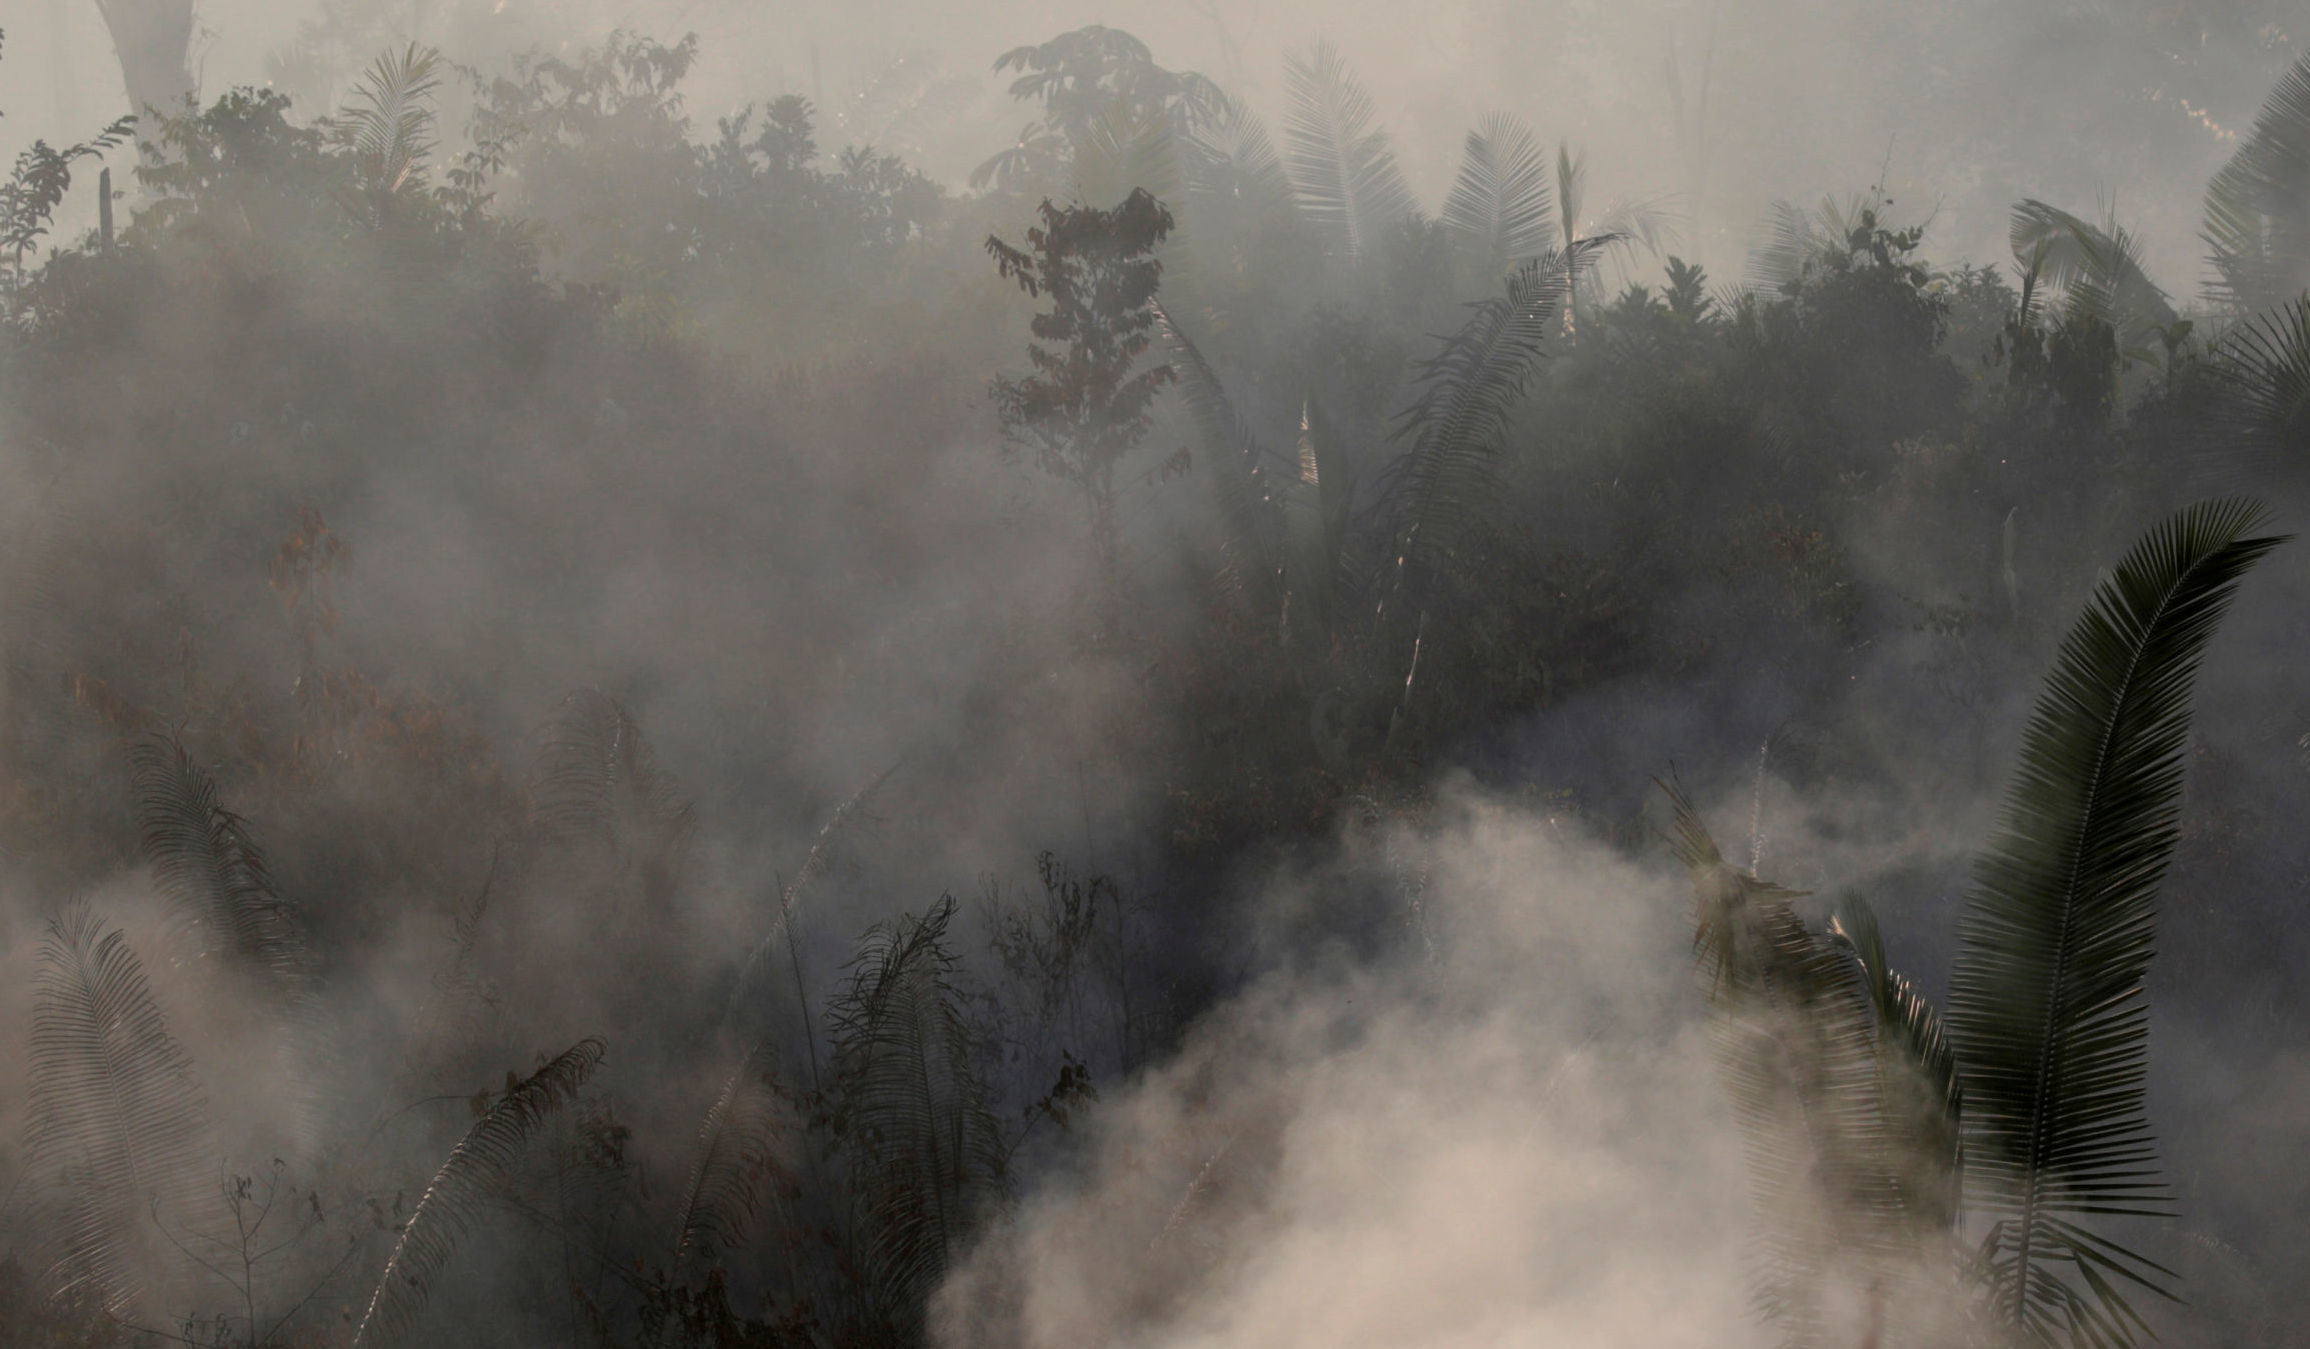 Smoke billows during a fire in an area of the Amazon rainforest near Humaita, Amazonas State, Brazil, Brazil August 14, 2019.